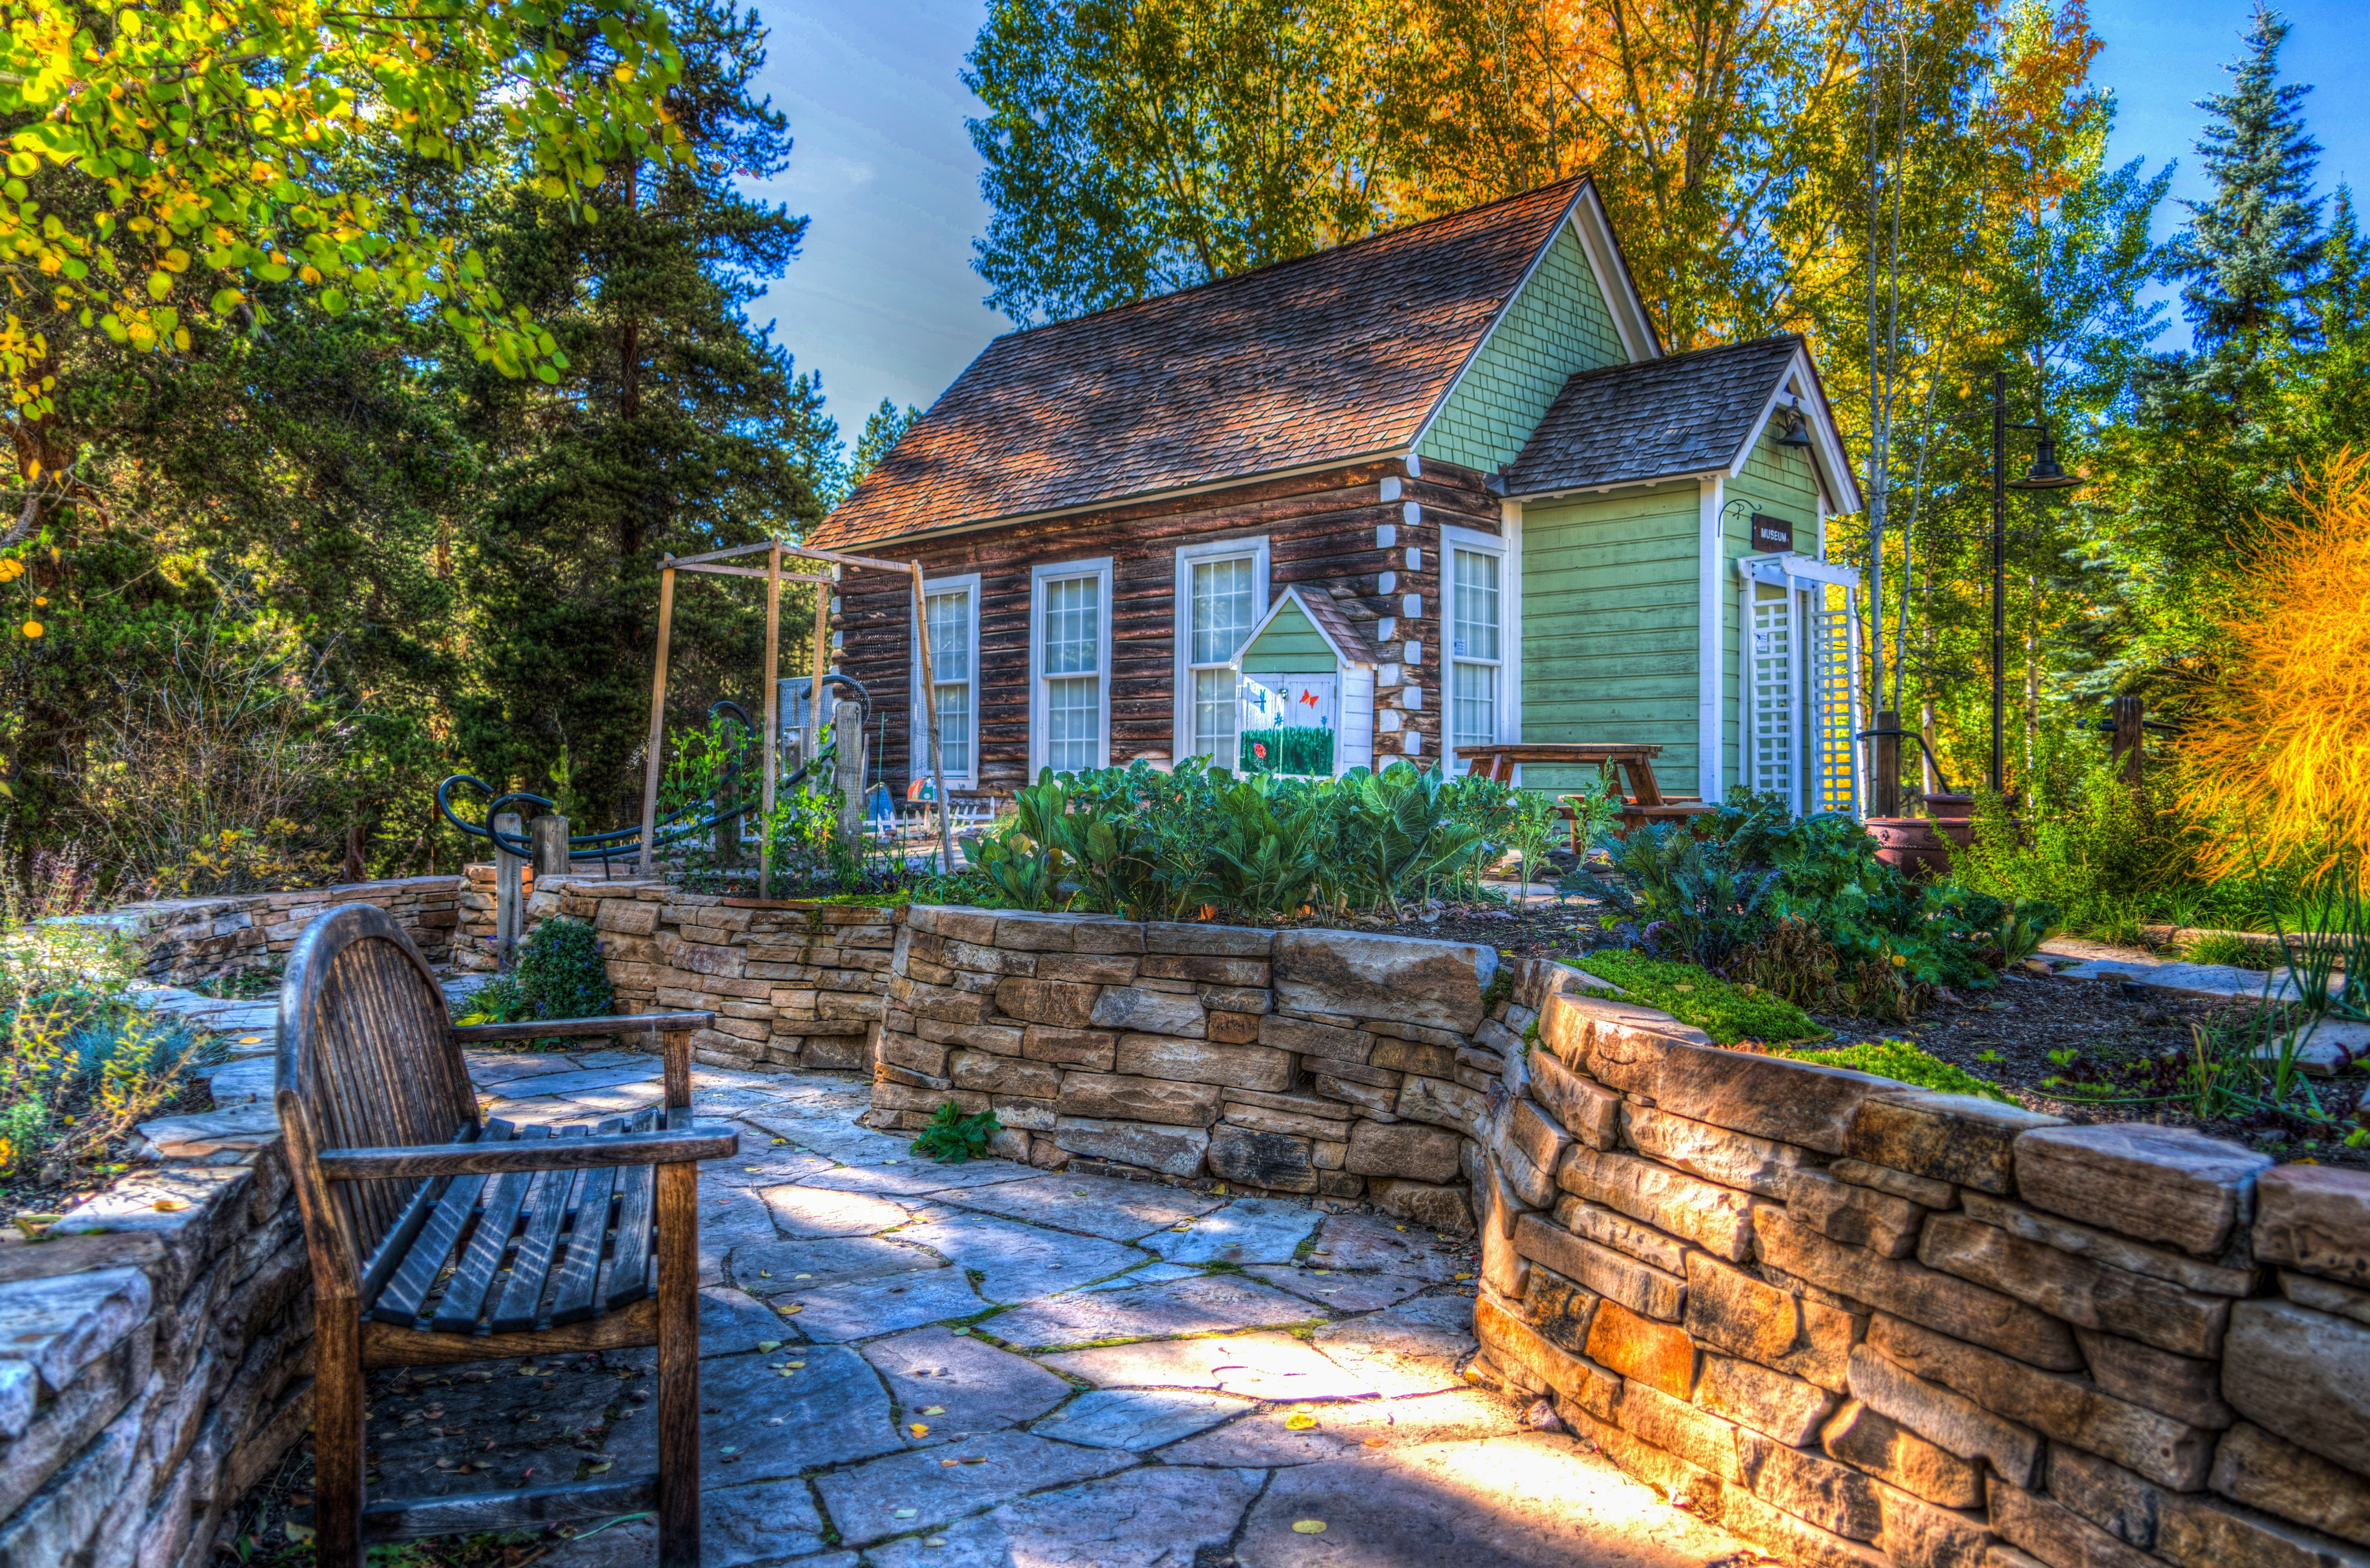 17 Landscaping Ideas to Increase Property Value practical landscaping tips for your home